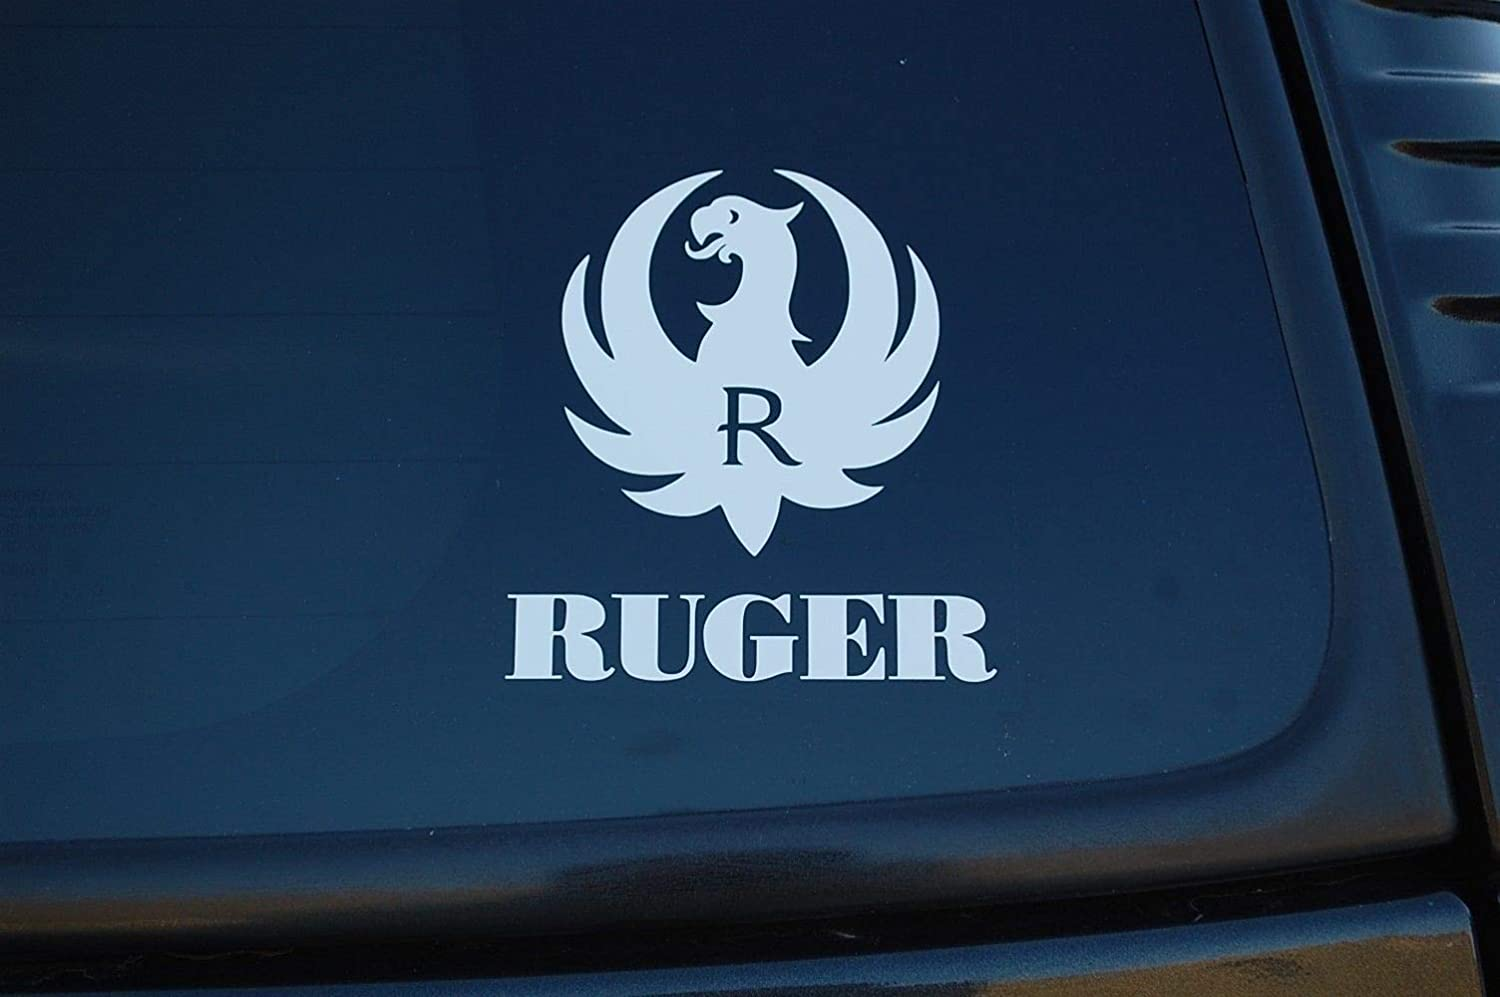 ruger vinyl decal window or bumper sticker with emblem